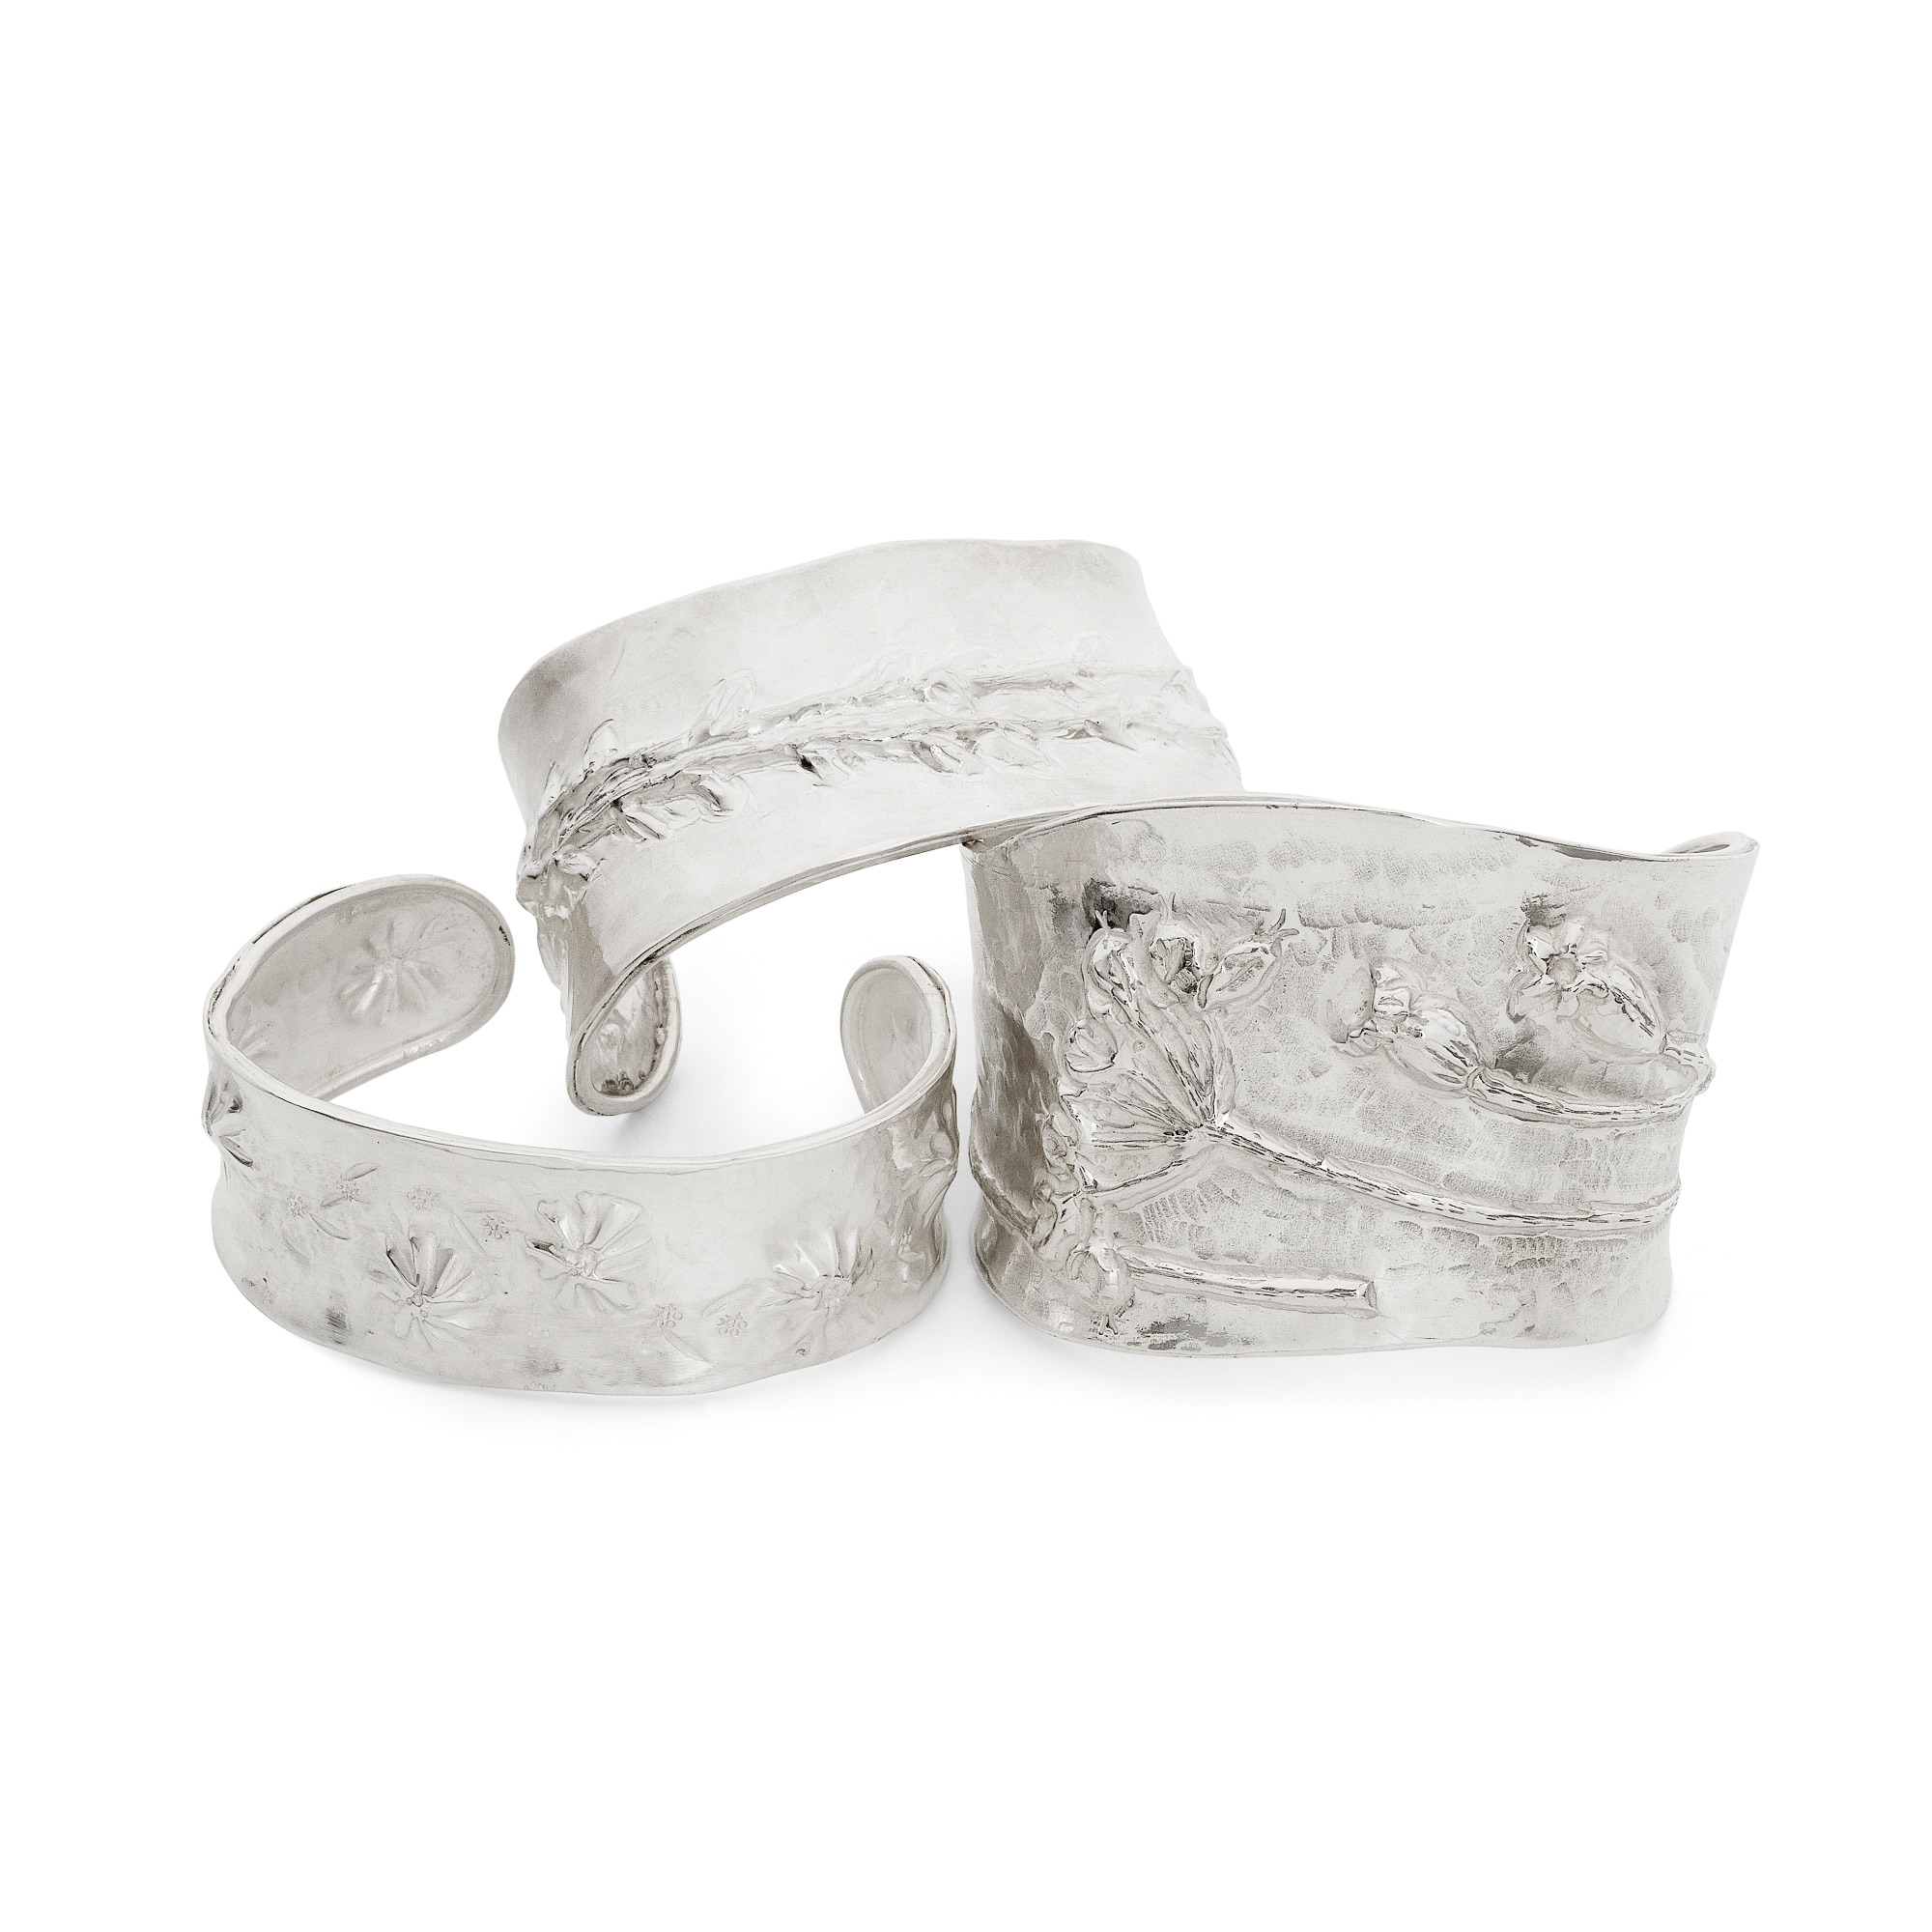 cathy-newell-price-silver-cuffs